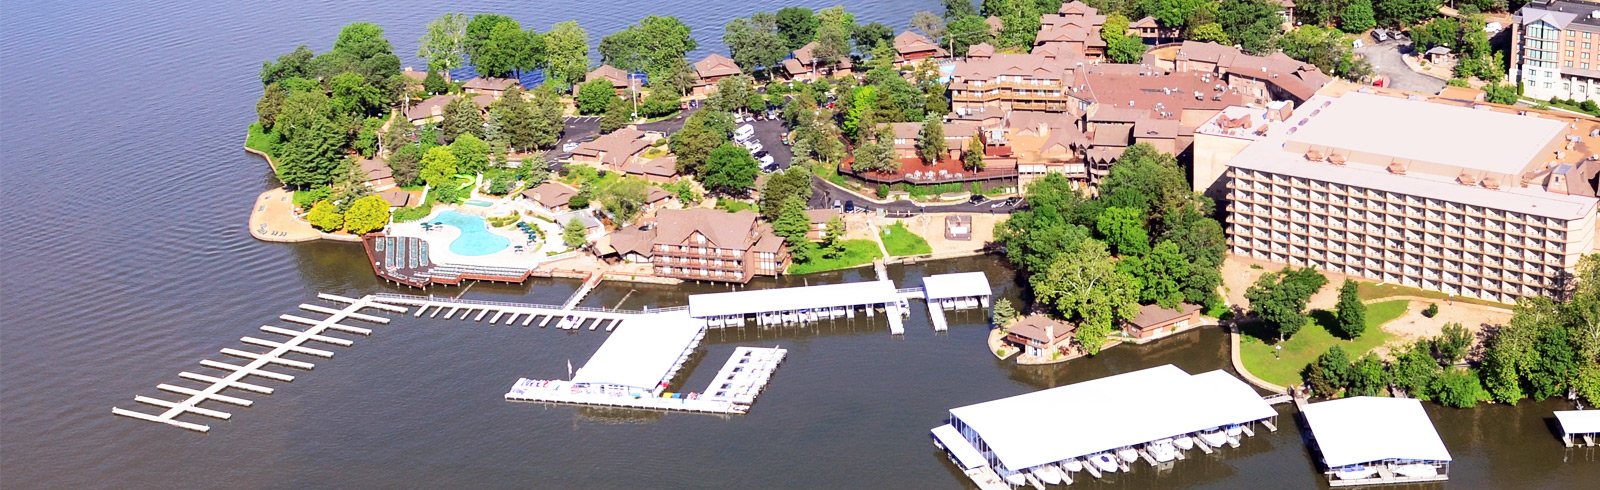 Aerial View of Margaritaville Lake Resort Lake of the Ozarks